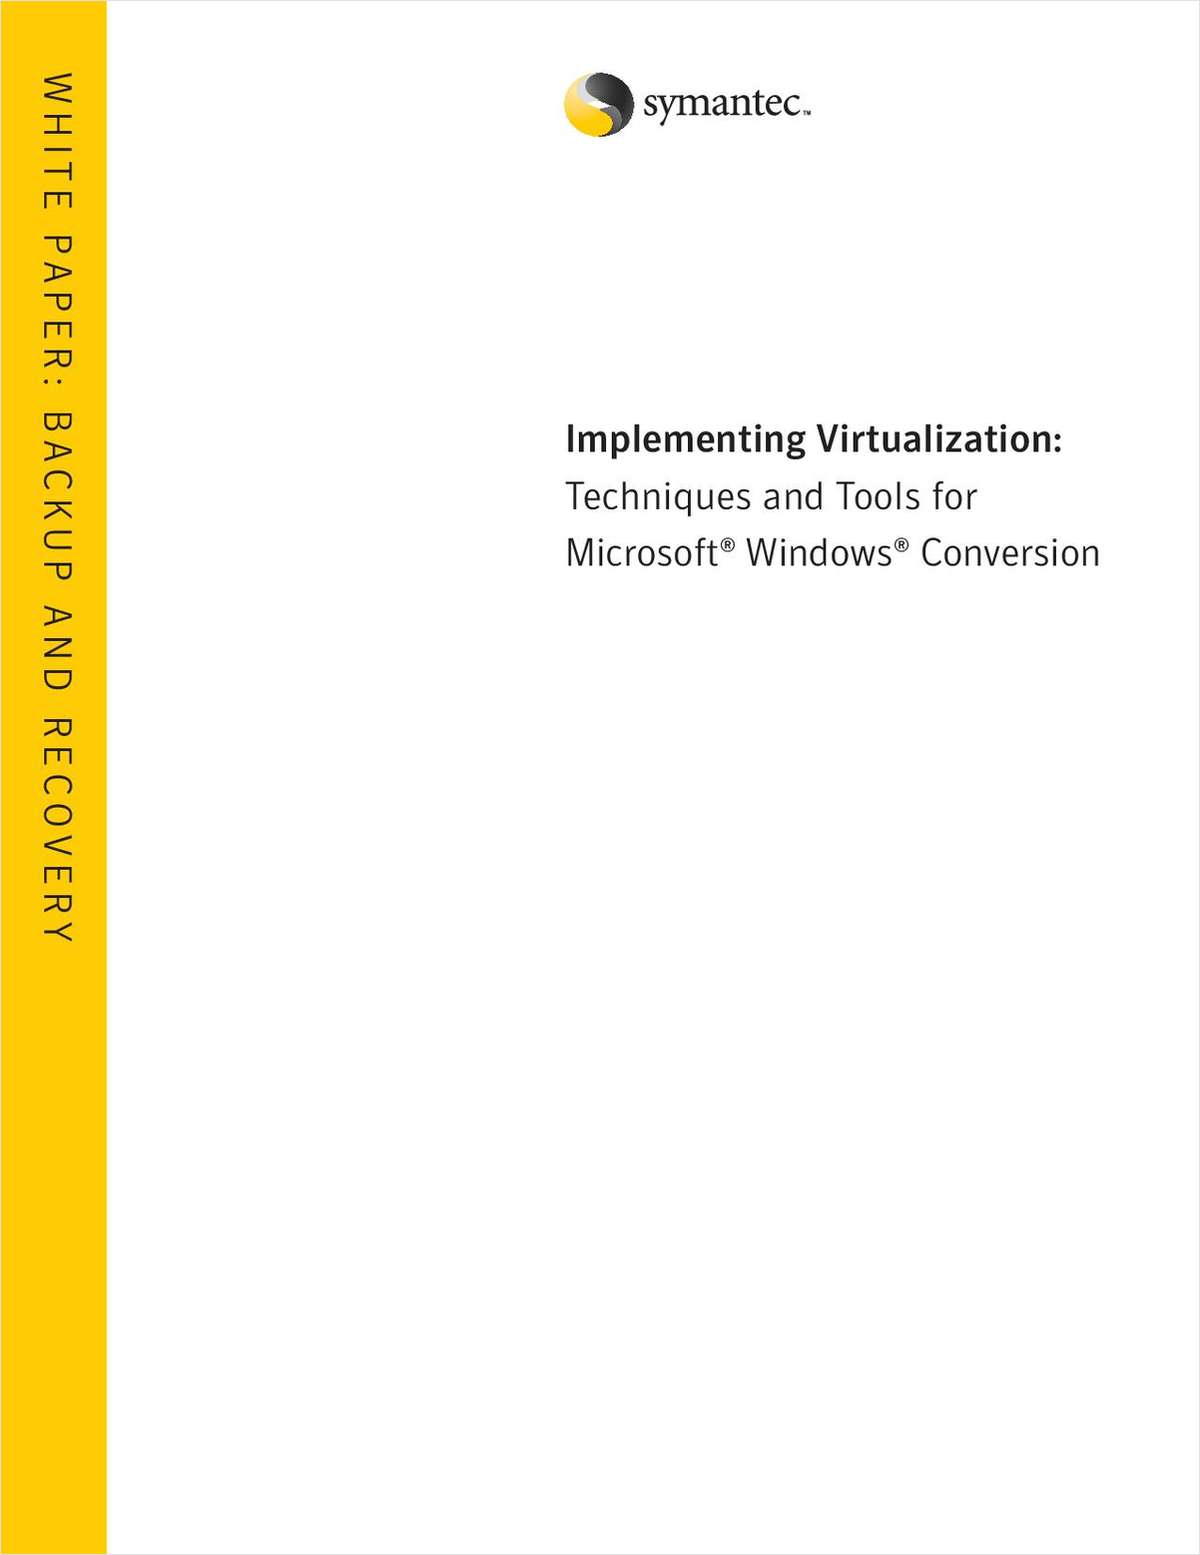 Implementing virtualization: Techniques and Tools for Microsoft® Windows® Conversion